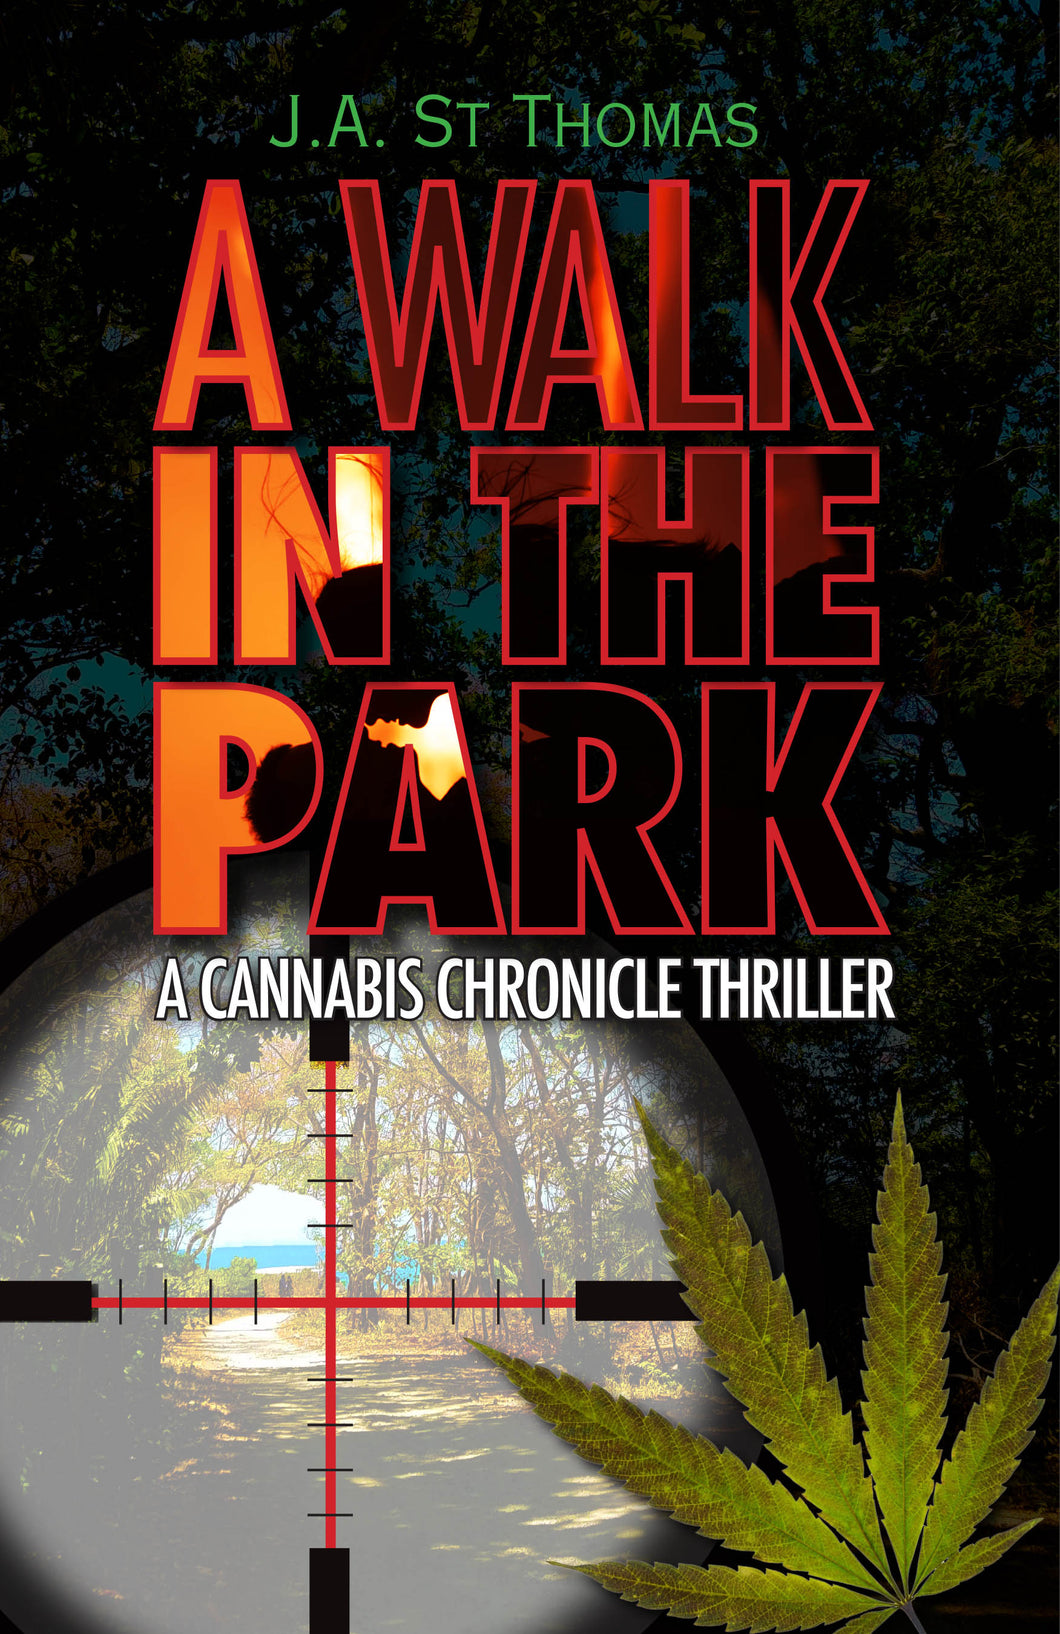 A Walk in The Park a cannabis chronicle thriller- Paperback